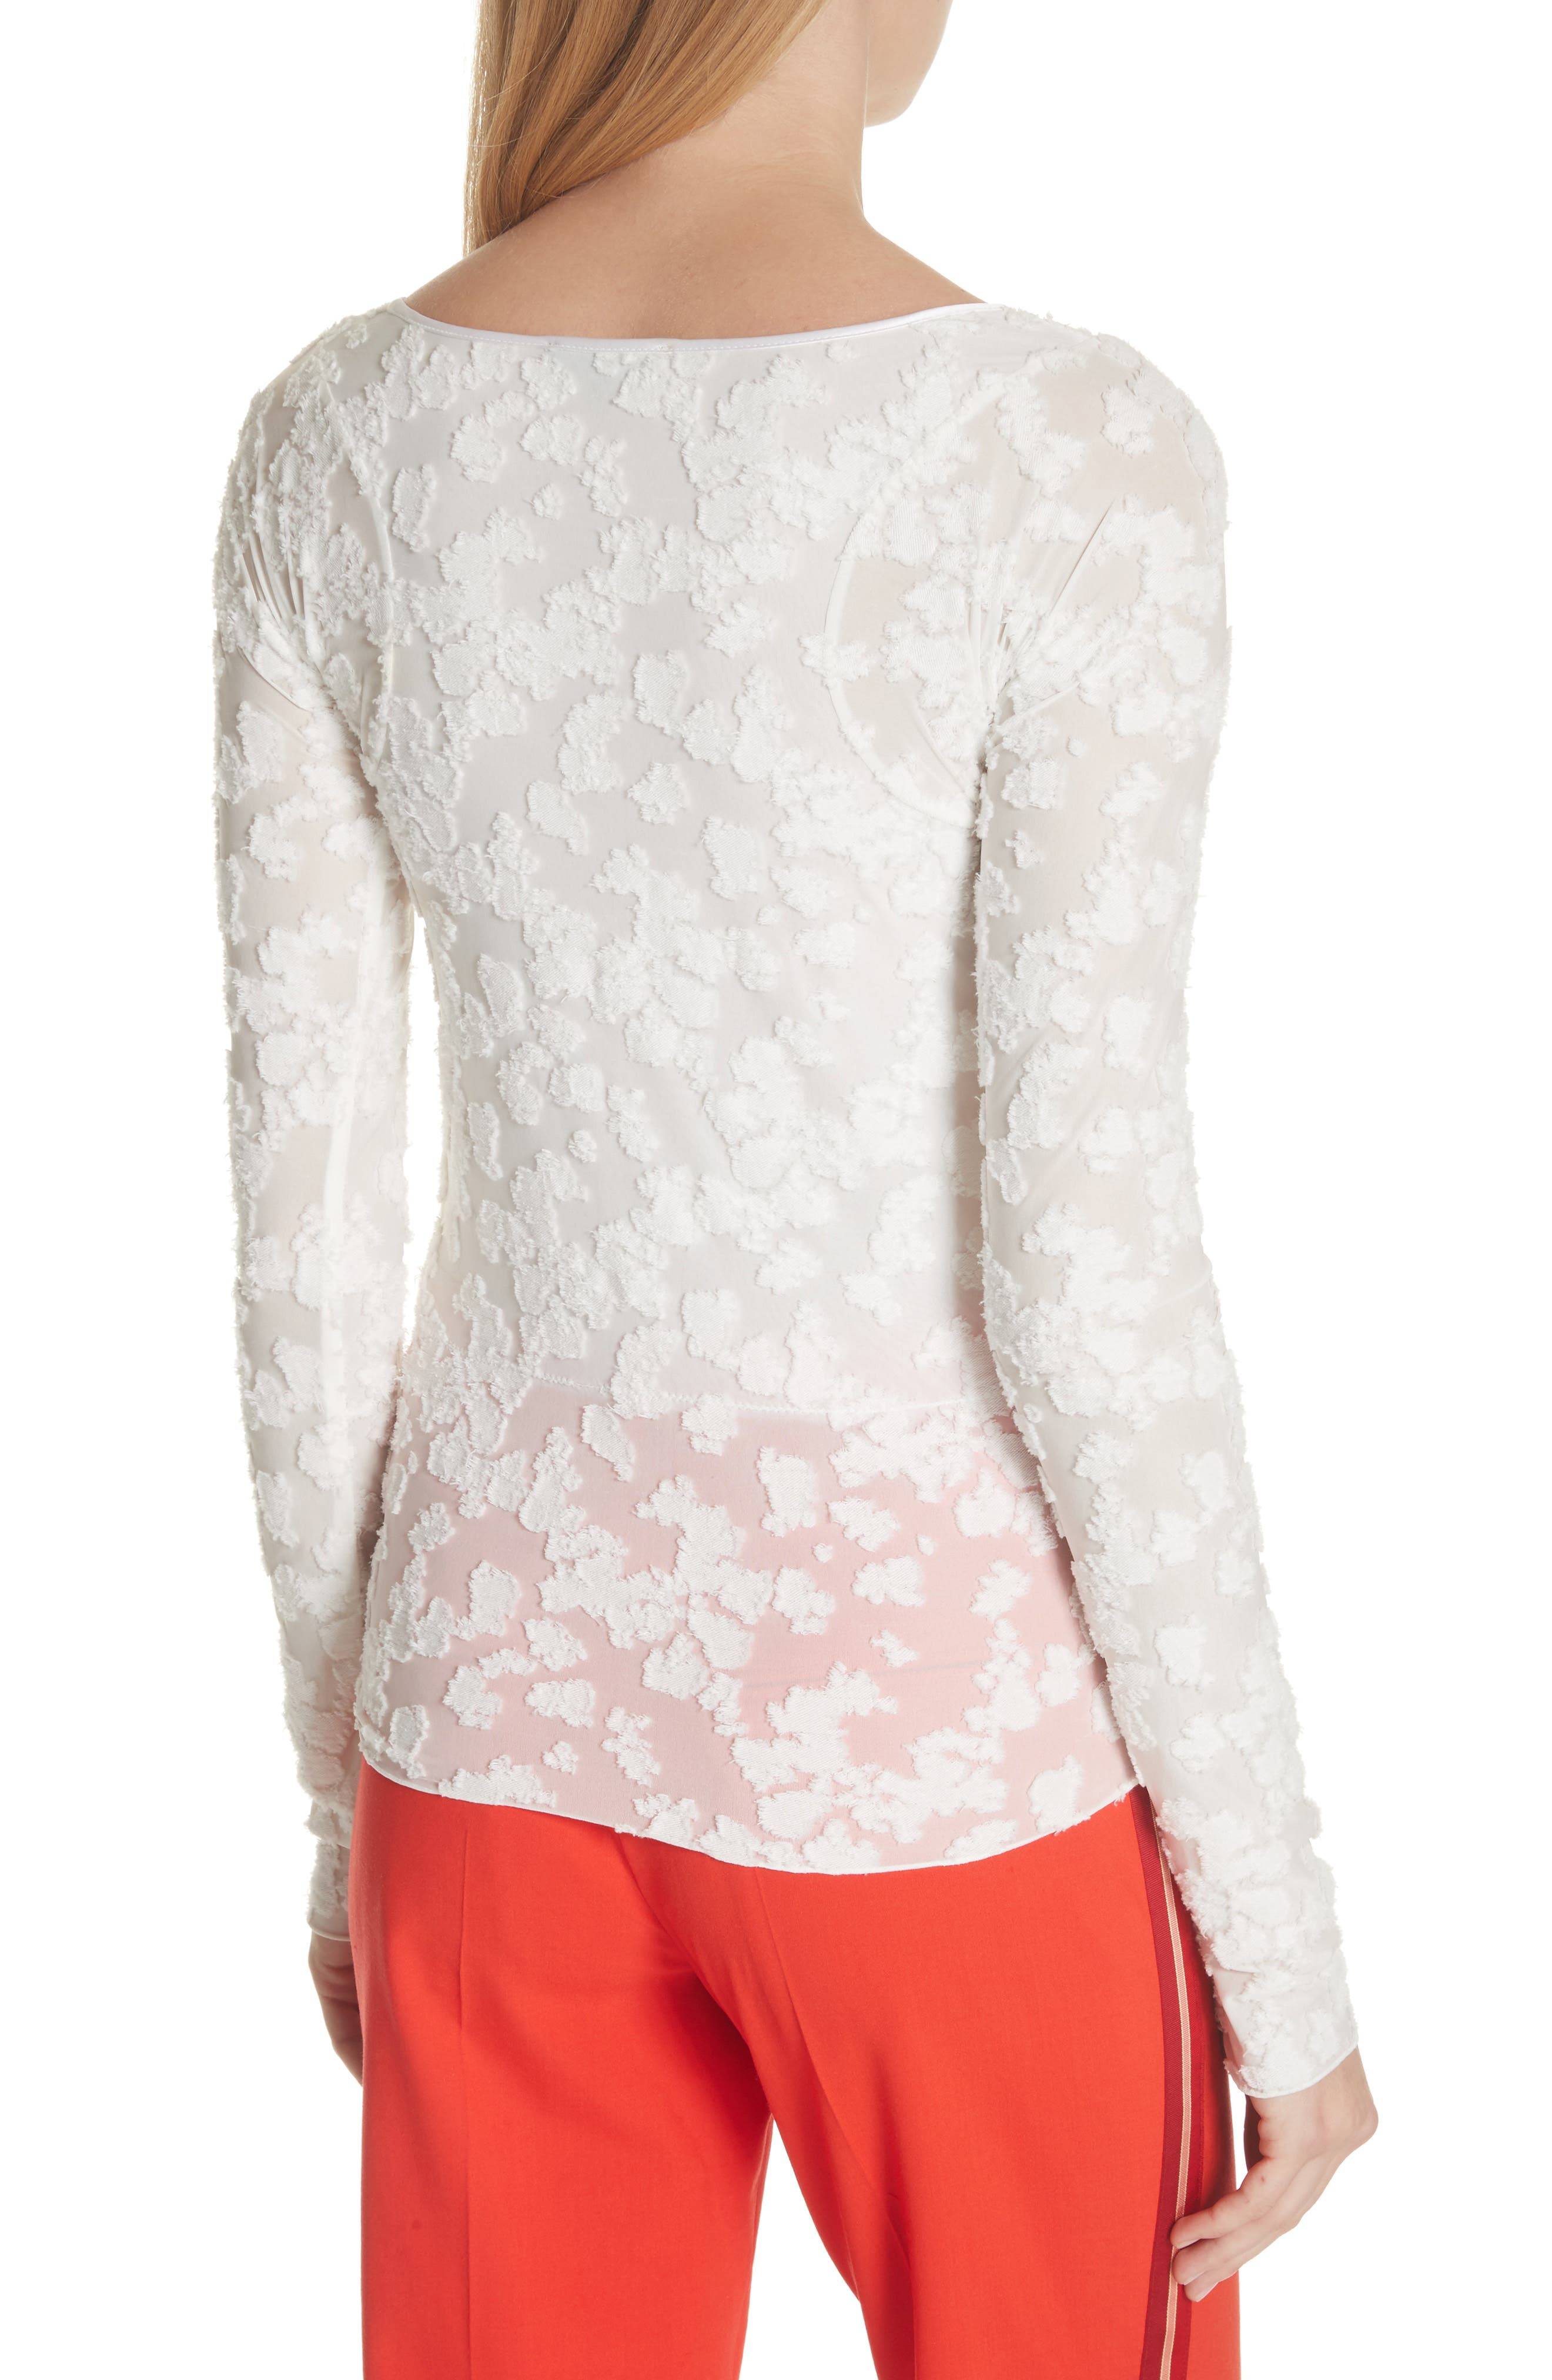 Lucie Floral Jacquard Sweater,                             Alternate thumbnail 2, color,